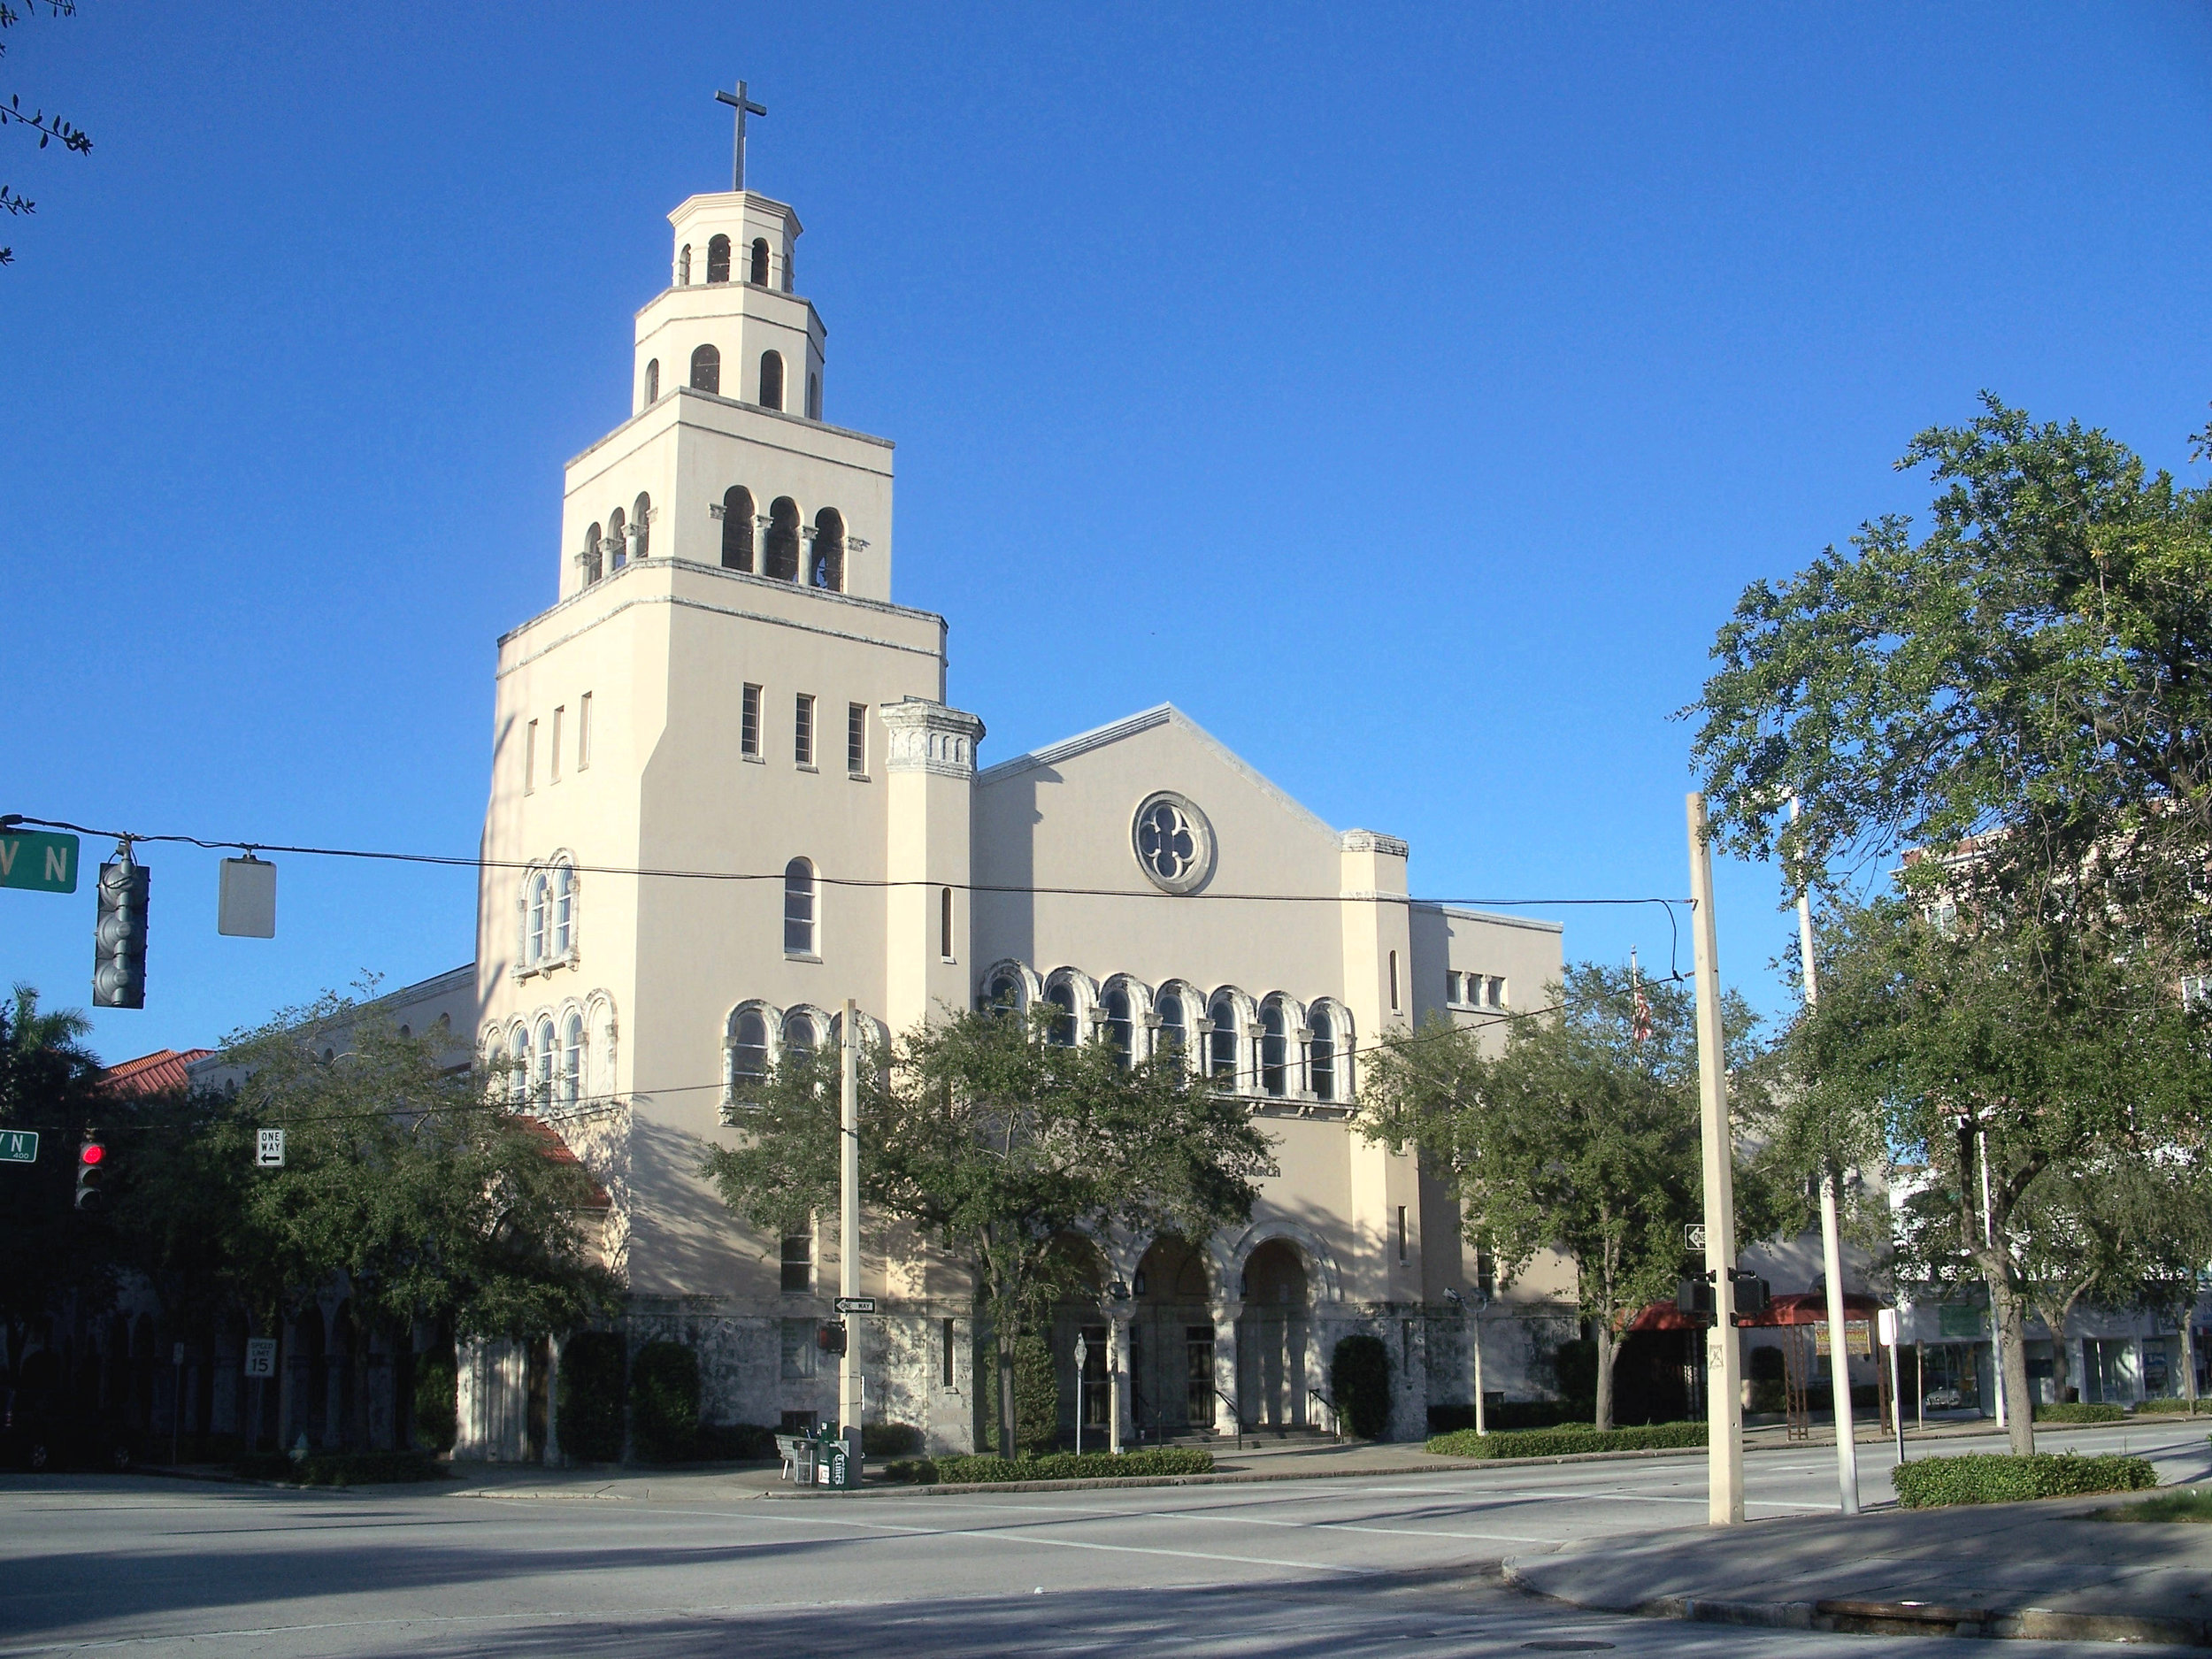 The Christ United Methodist Church has entered an agreement to sell its parking lot at 450 1st Ave N.